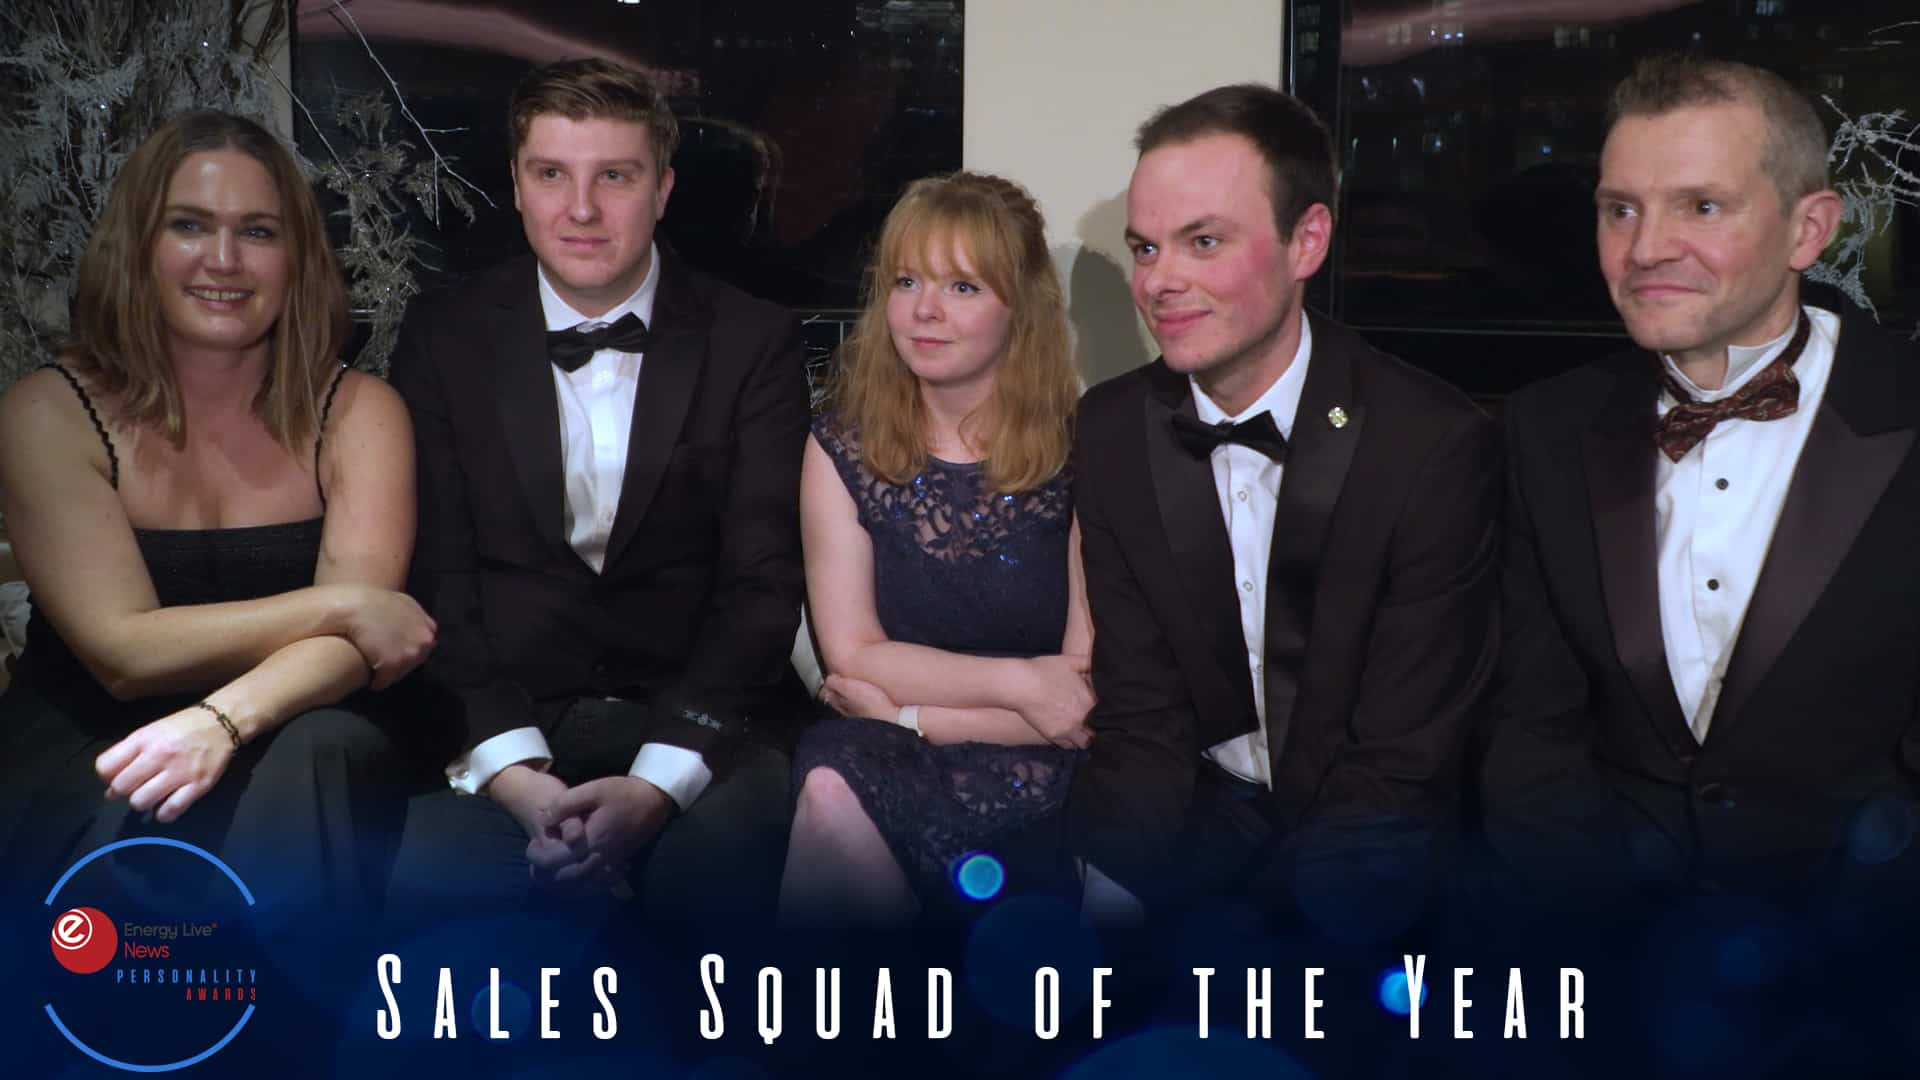 Ecotricity wins Sales Squad of the Year award